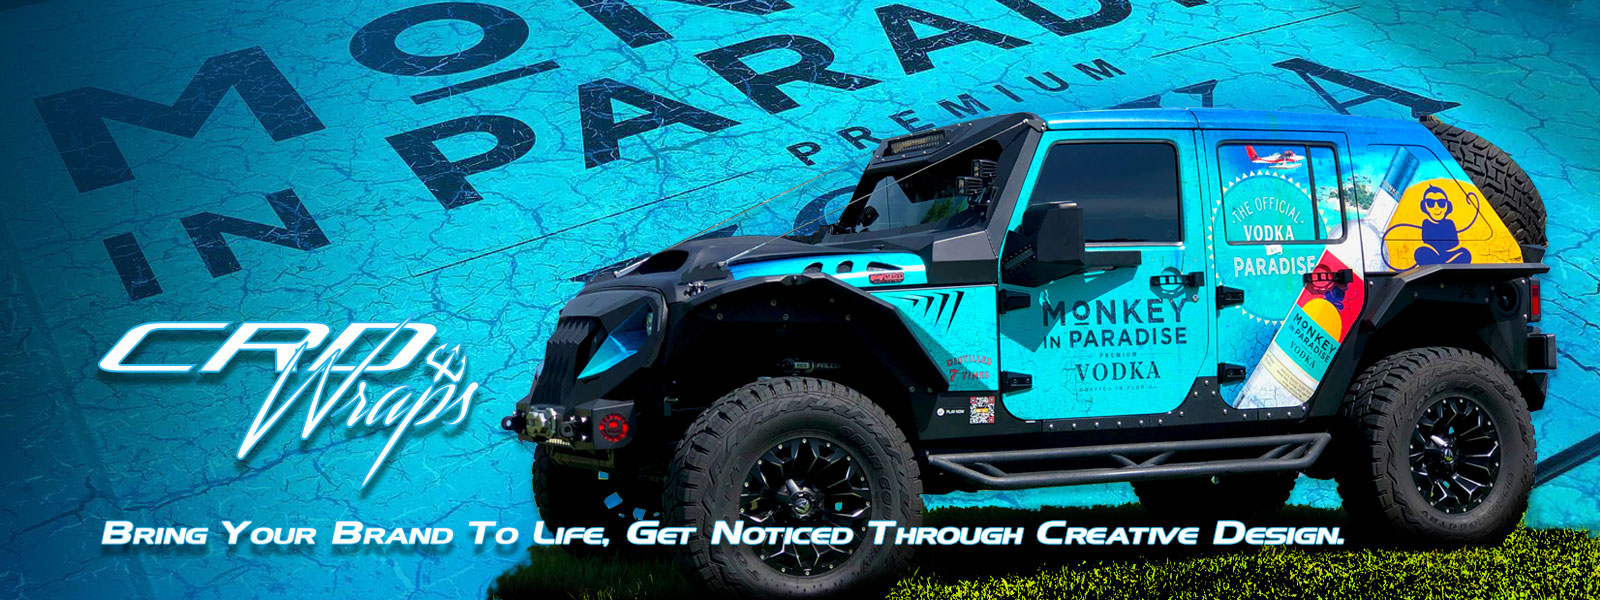 Monkey in Paradise Jeep Wrap